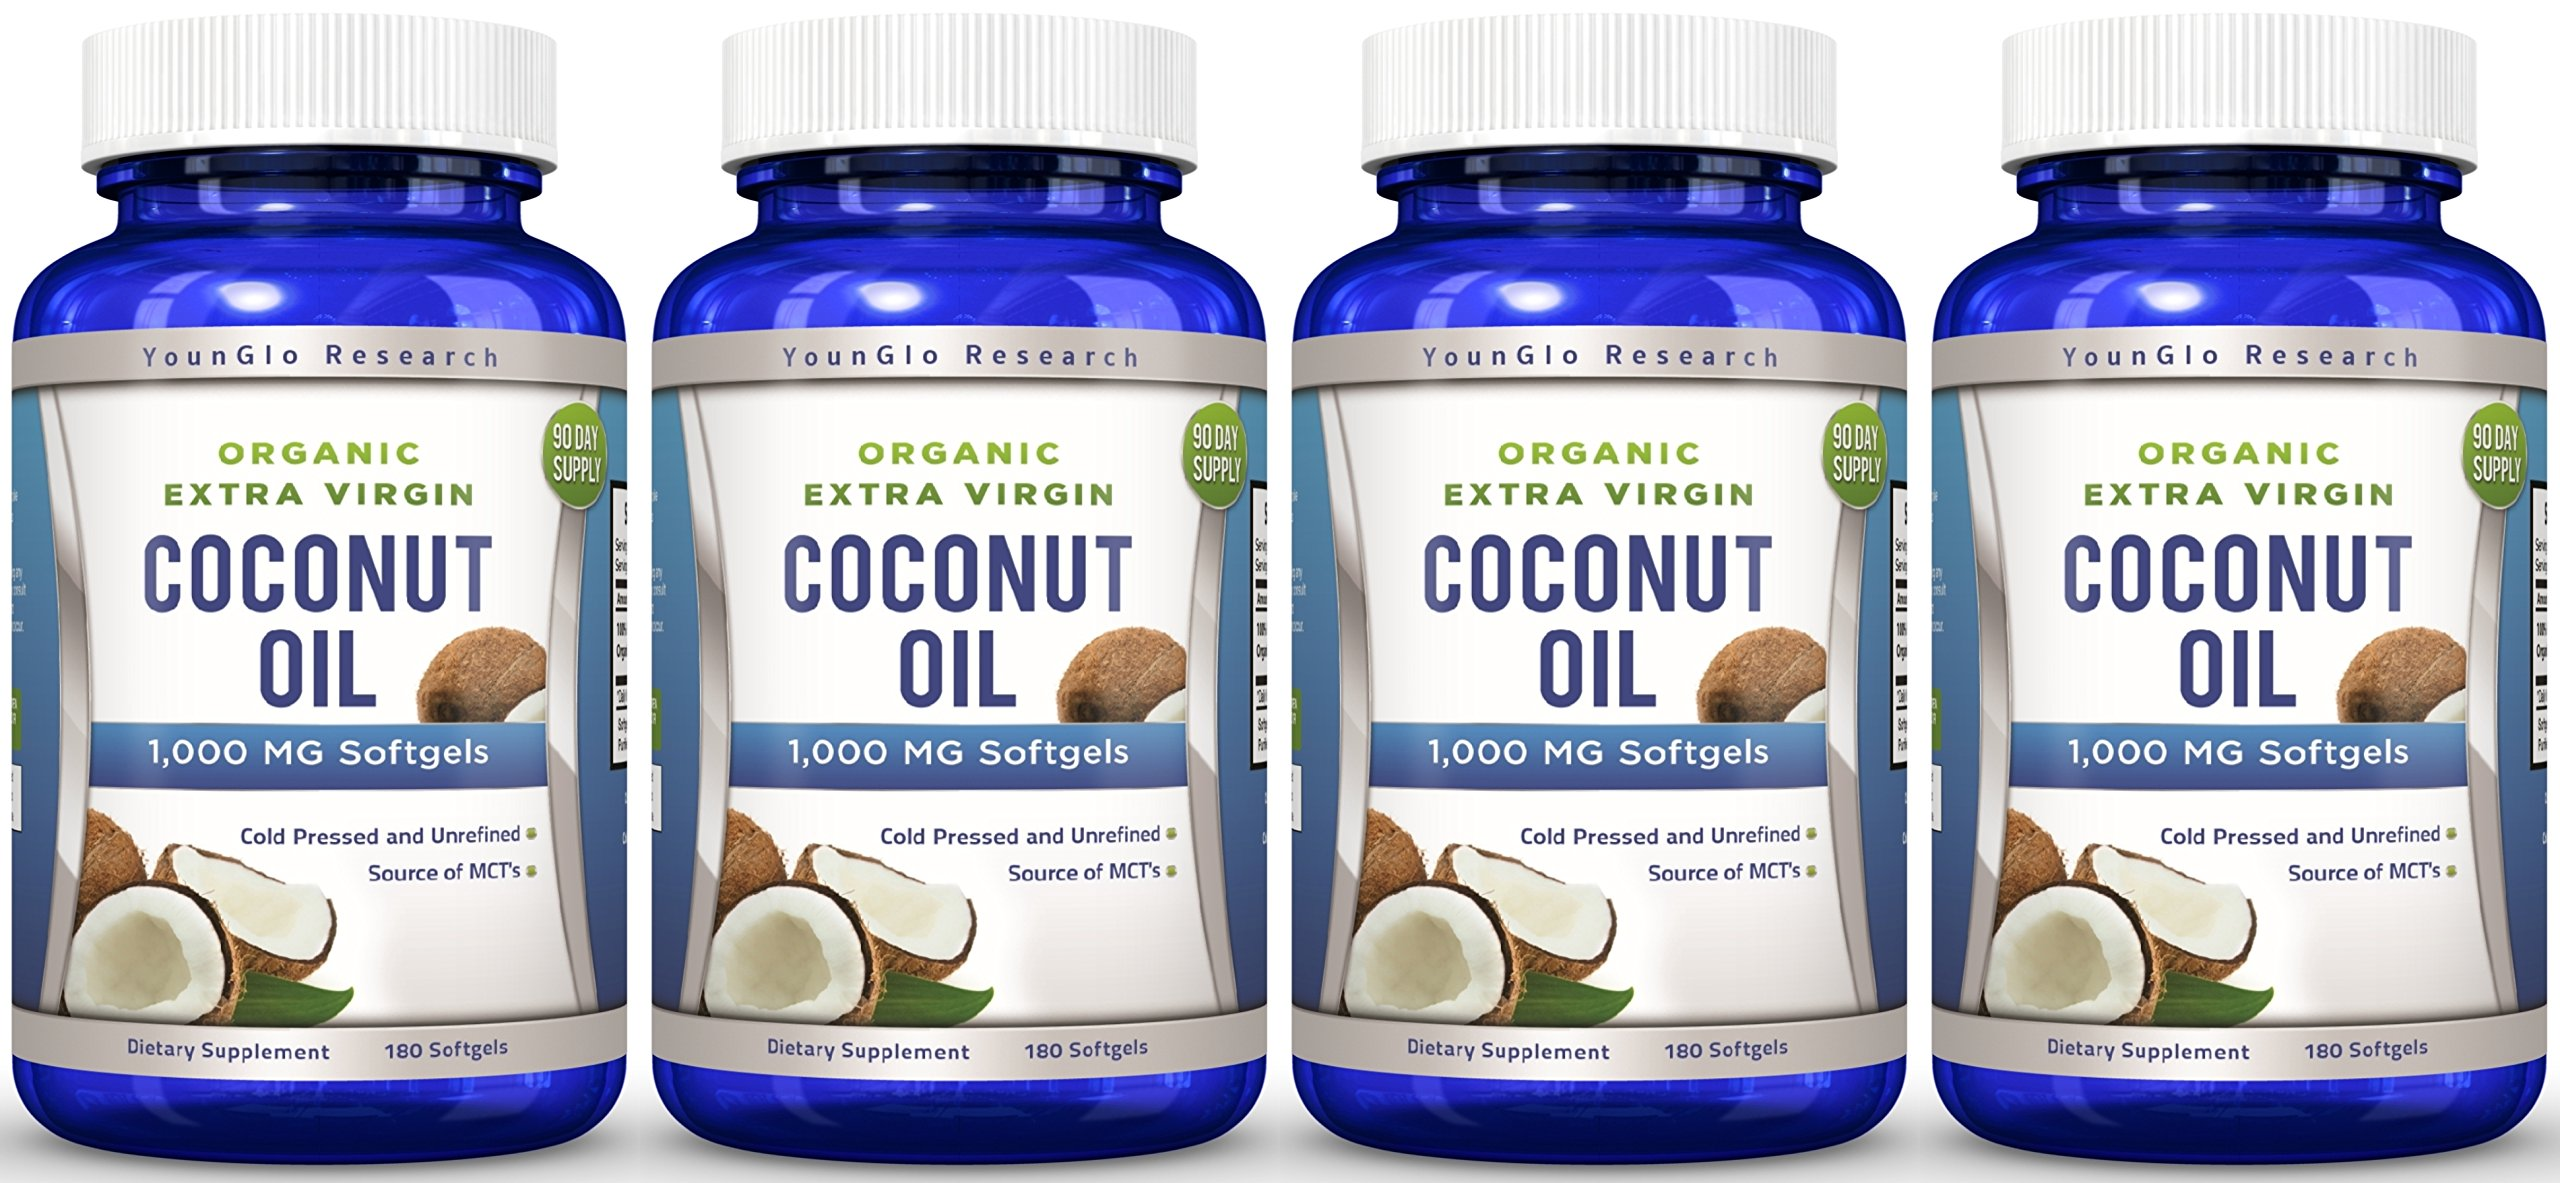 Coconut Oil Capsules - 1000 mg Organic Extra Virgin - 180 Softgels - Great Pills for Hair, Skin, Energy and Weight Management (4 Pack)